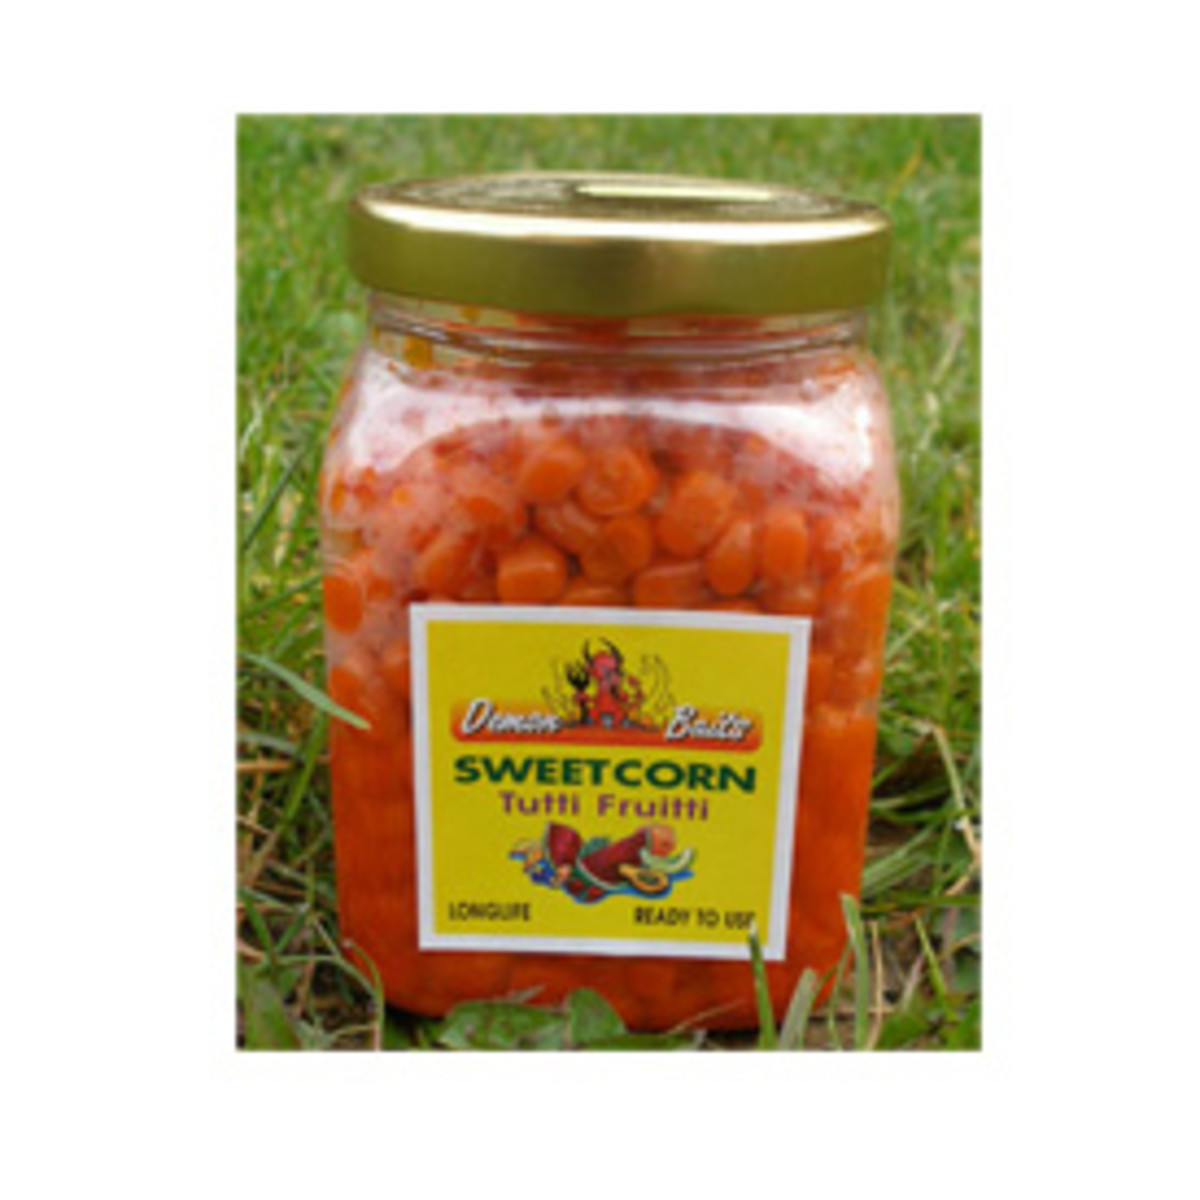 Flavoured Sweetcorn